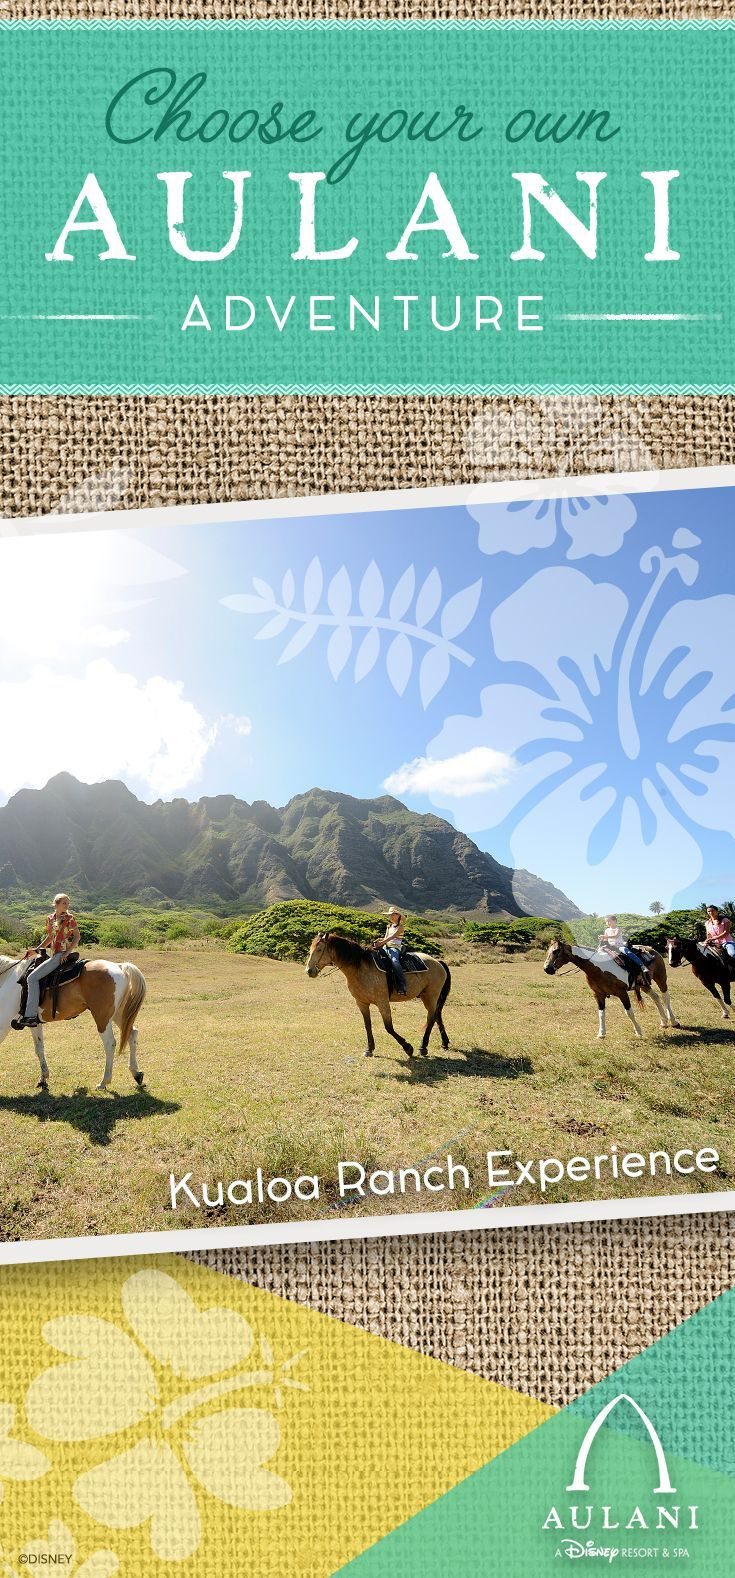 Guests at Aulani, a Disney Resort & Spa in Hawai'i can embark on a horseback ride and experience the spectacular scenery of Oahu's hidden valleys.